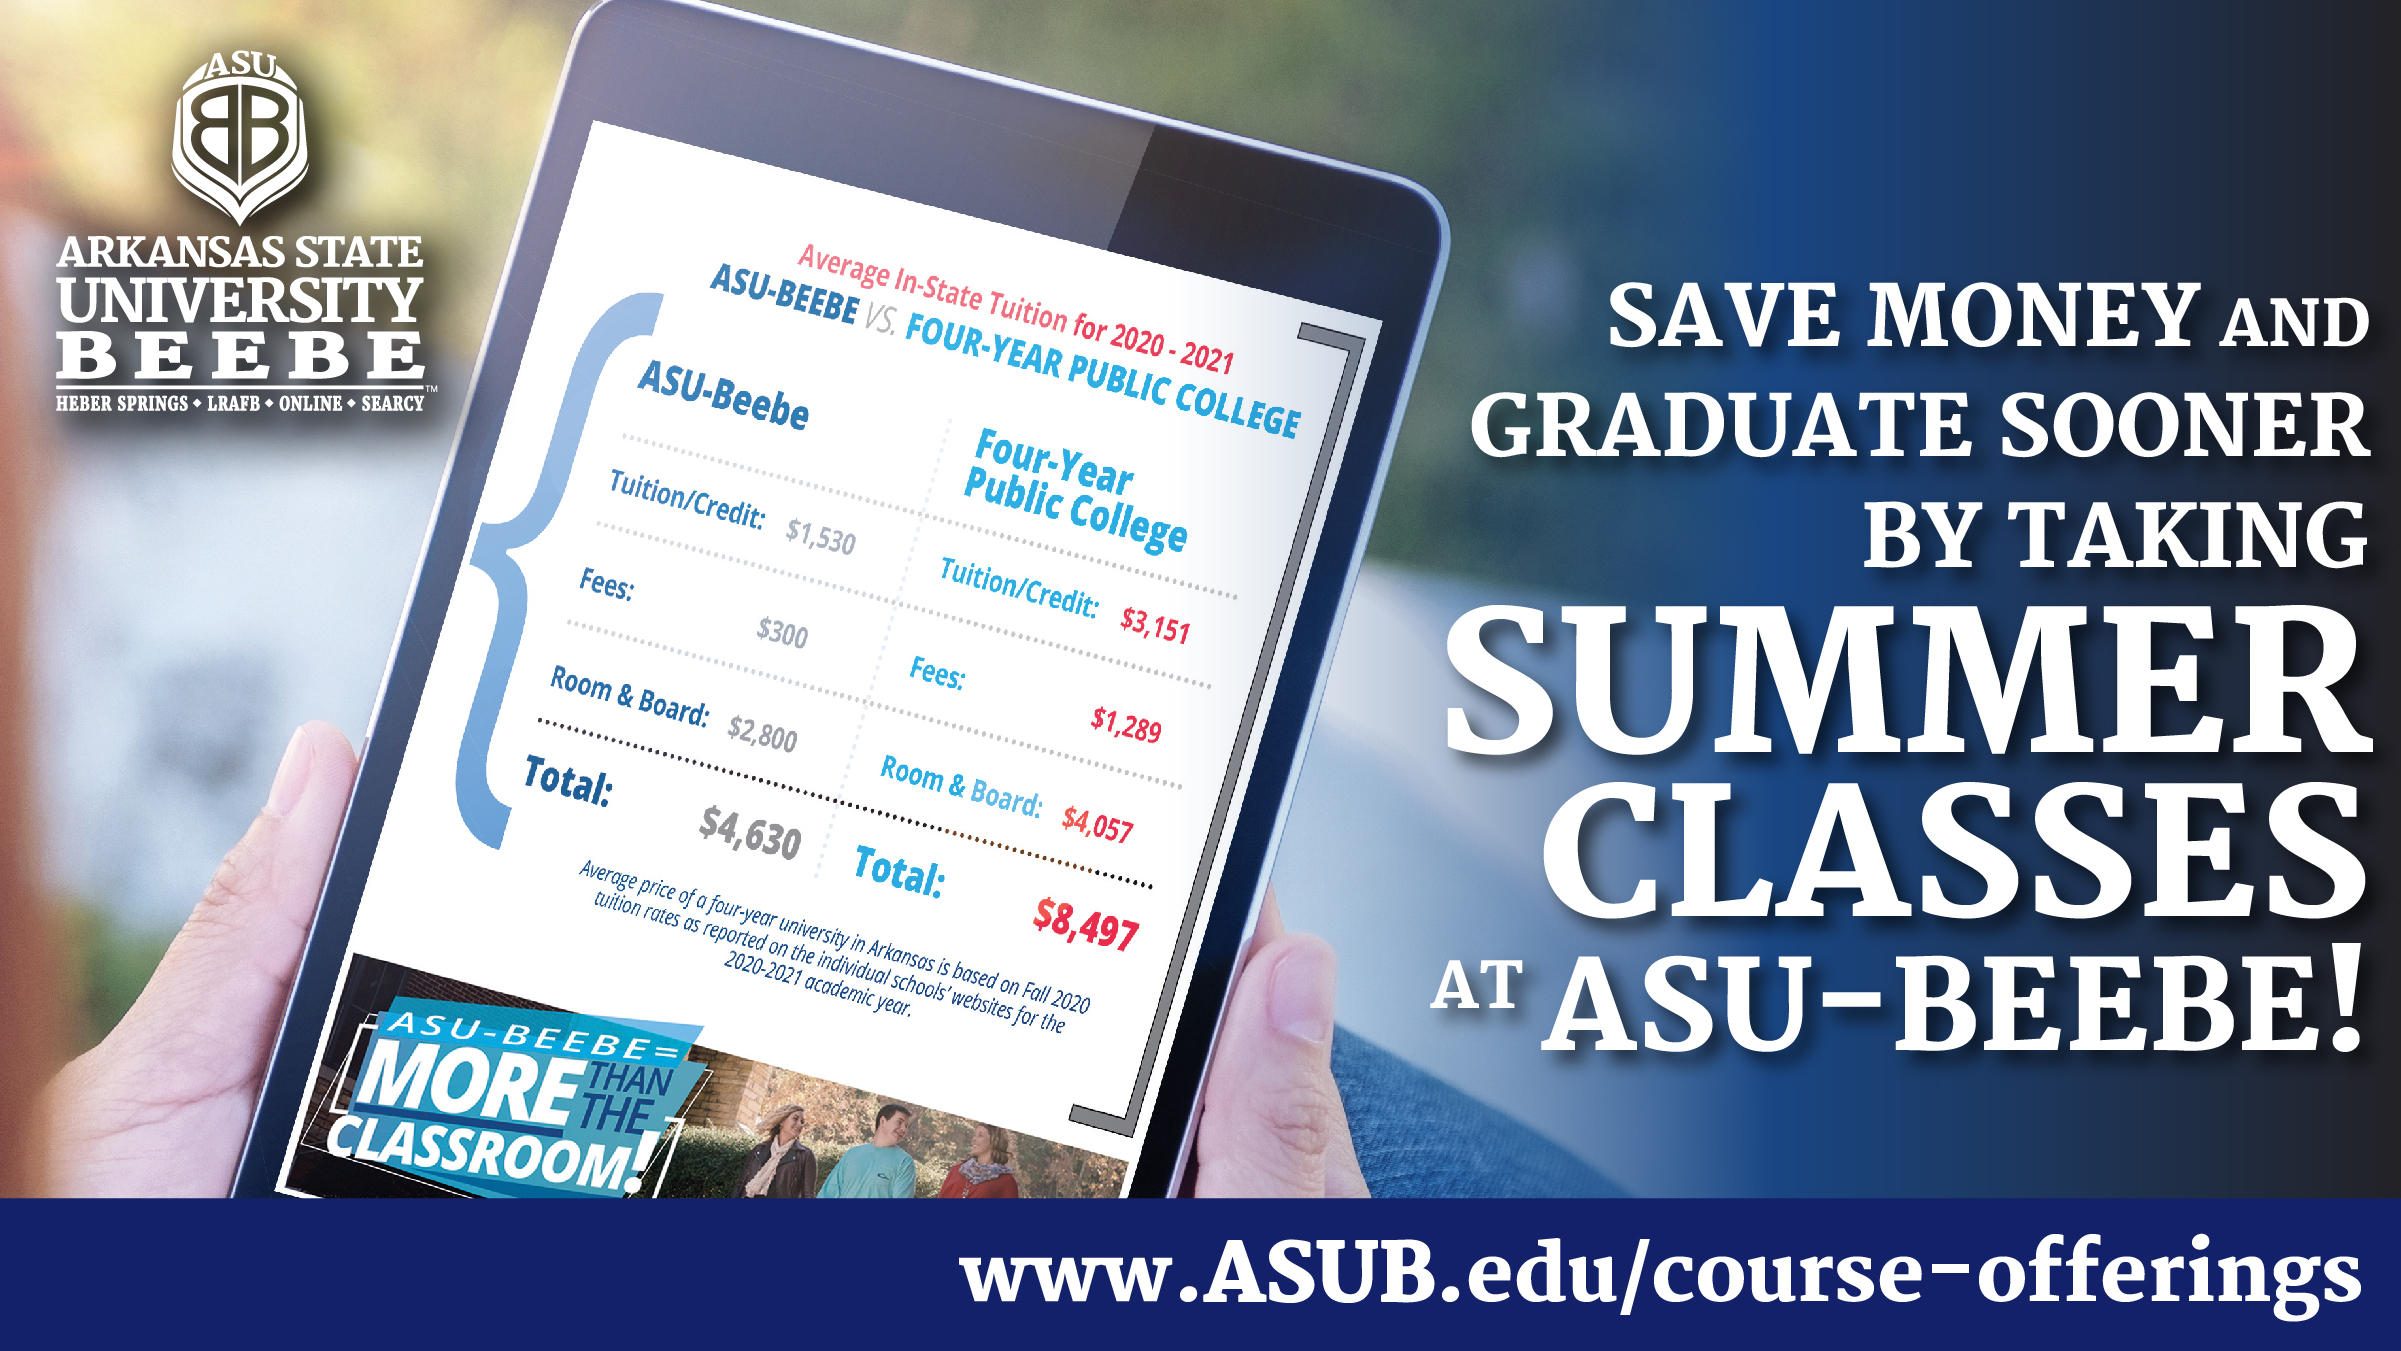 Summer Classes promo with costs